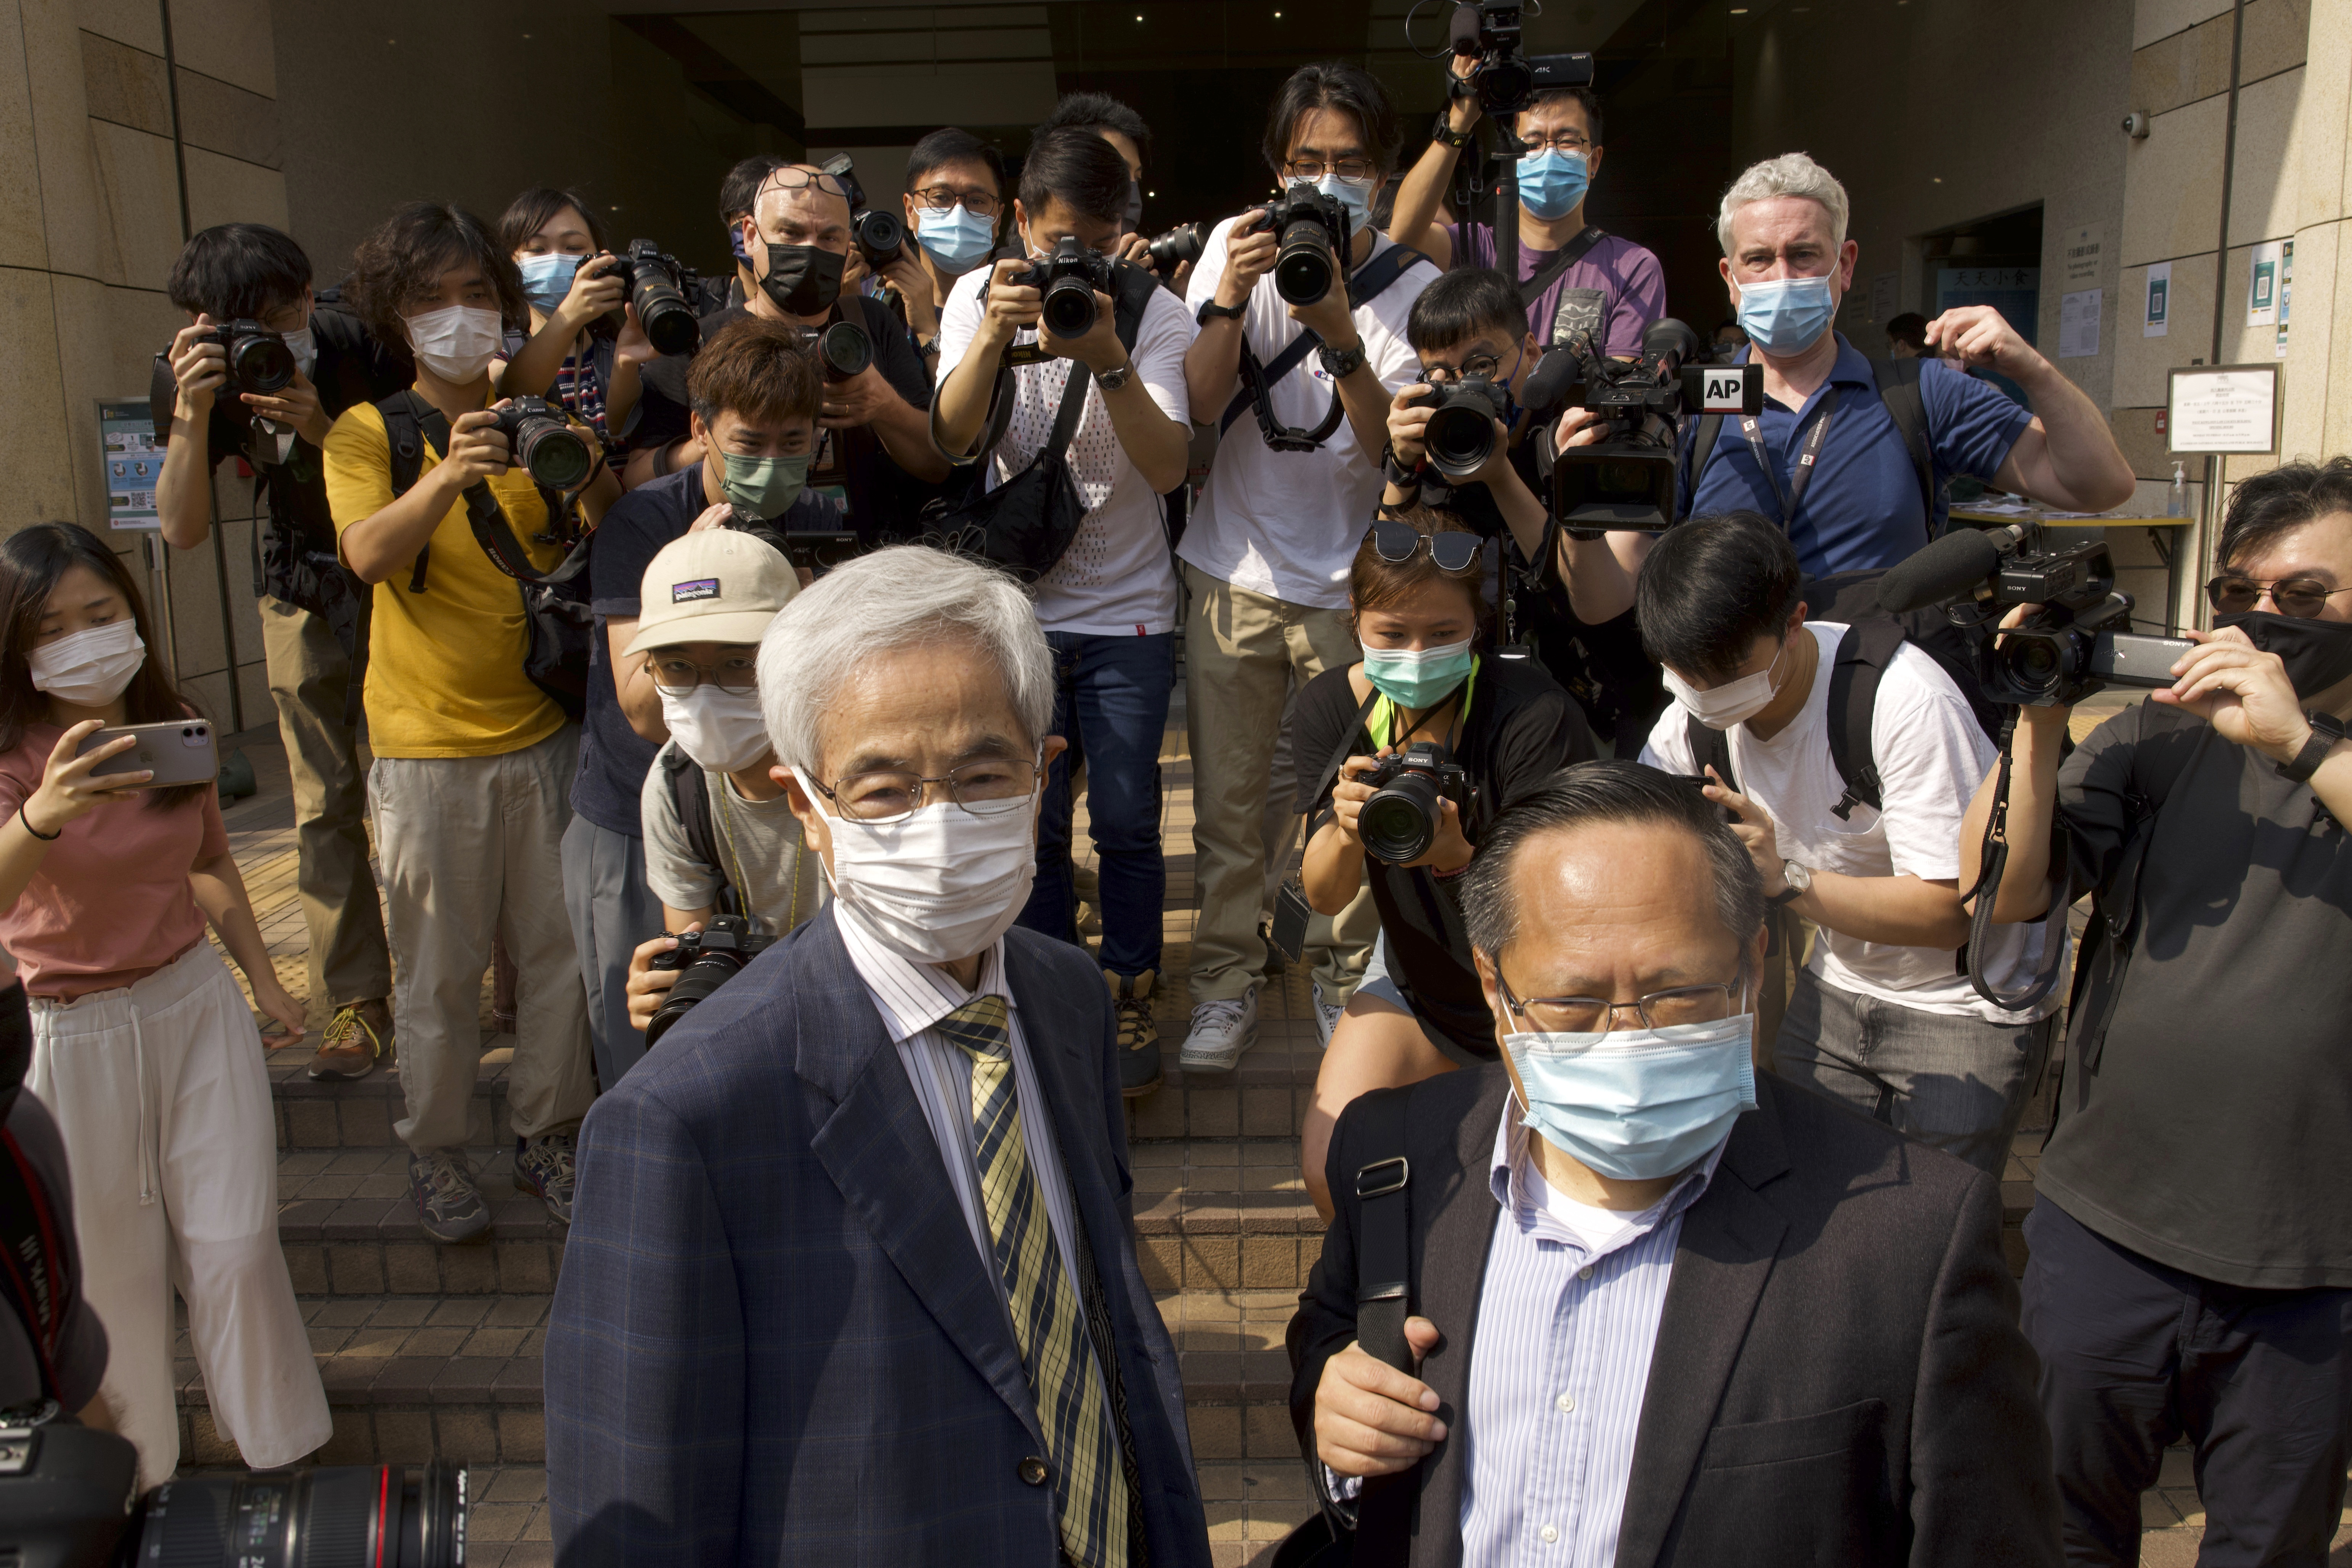 Pro-democracy lawmaker Martin Lee, left, and Albert Ho, right, arrive at a court in Hong Kong Thursday, April 1, 2021.